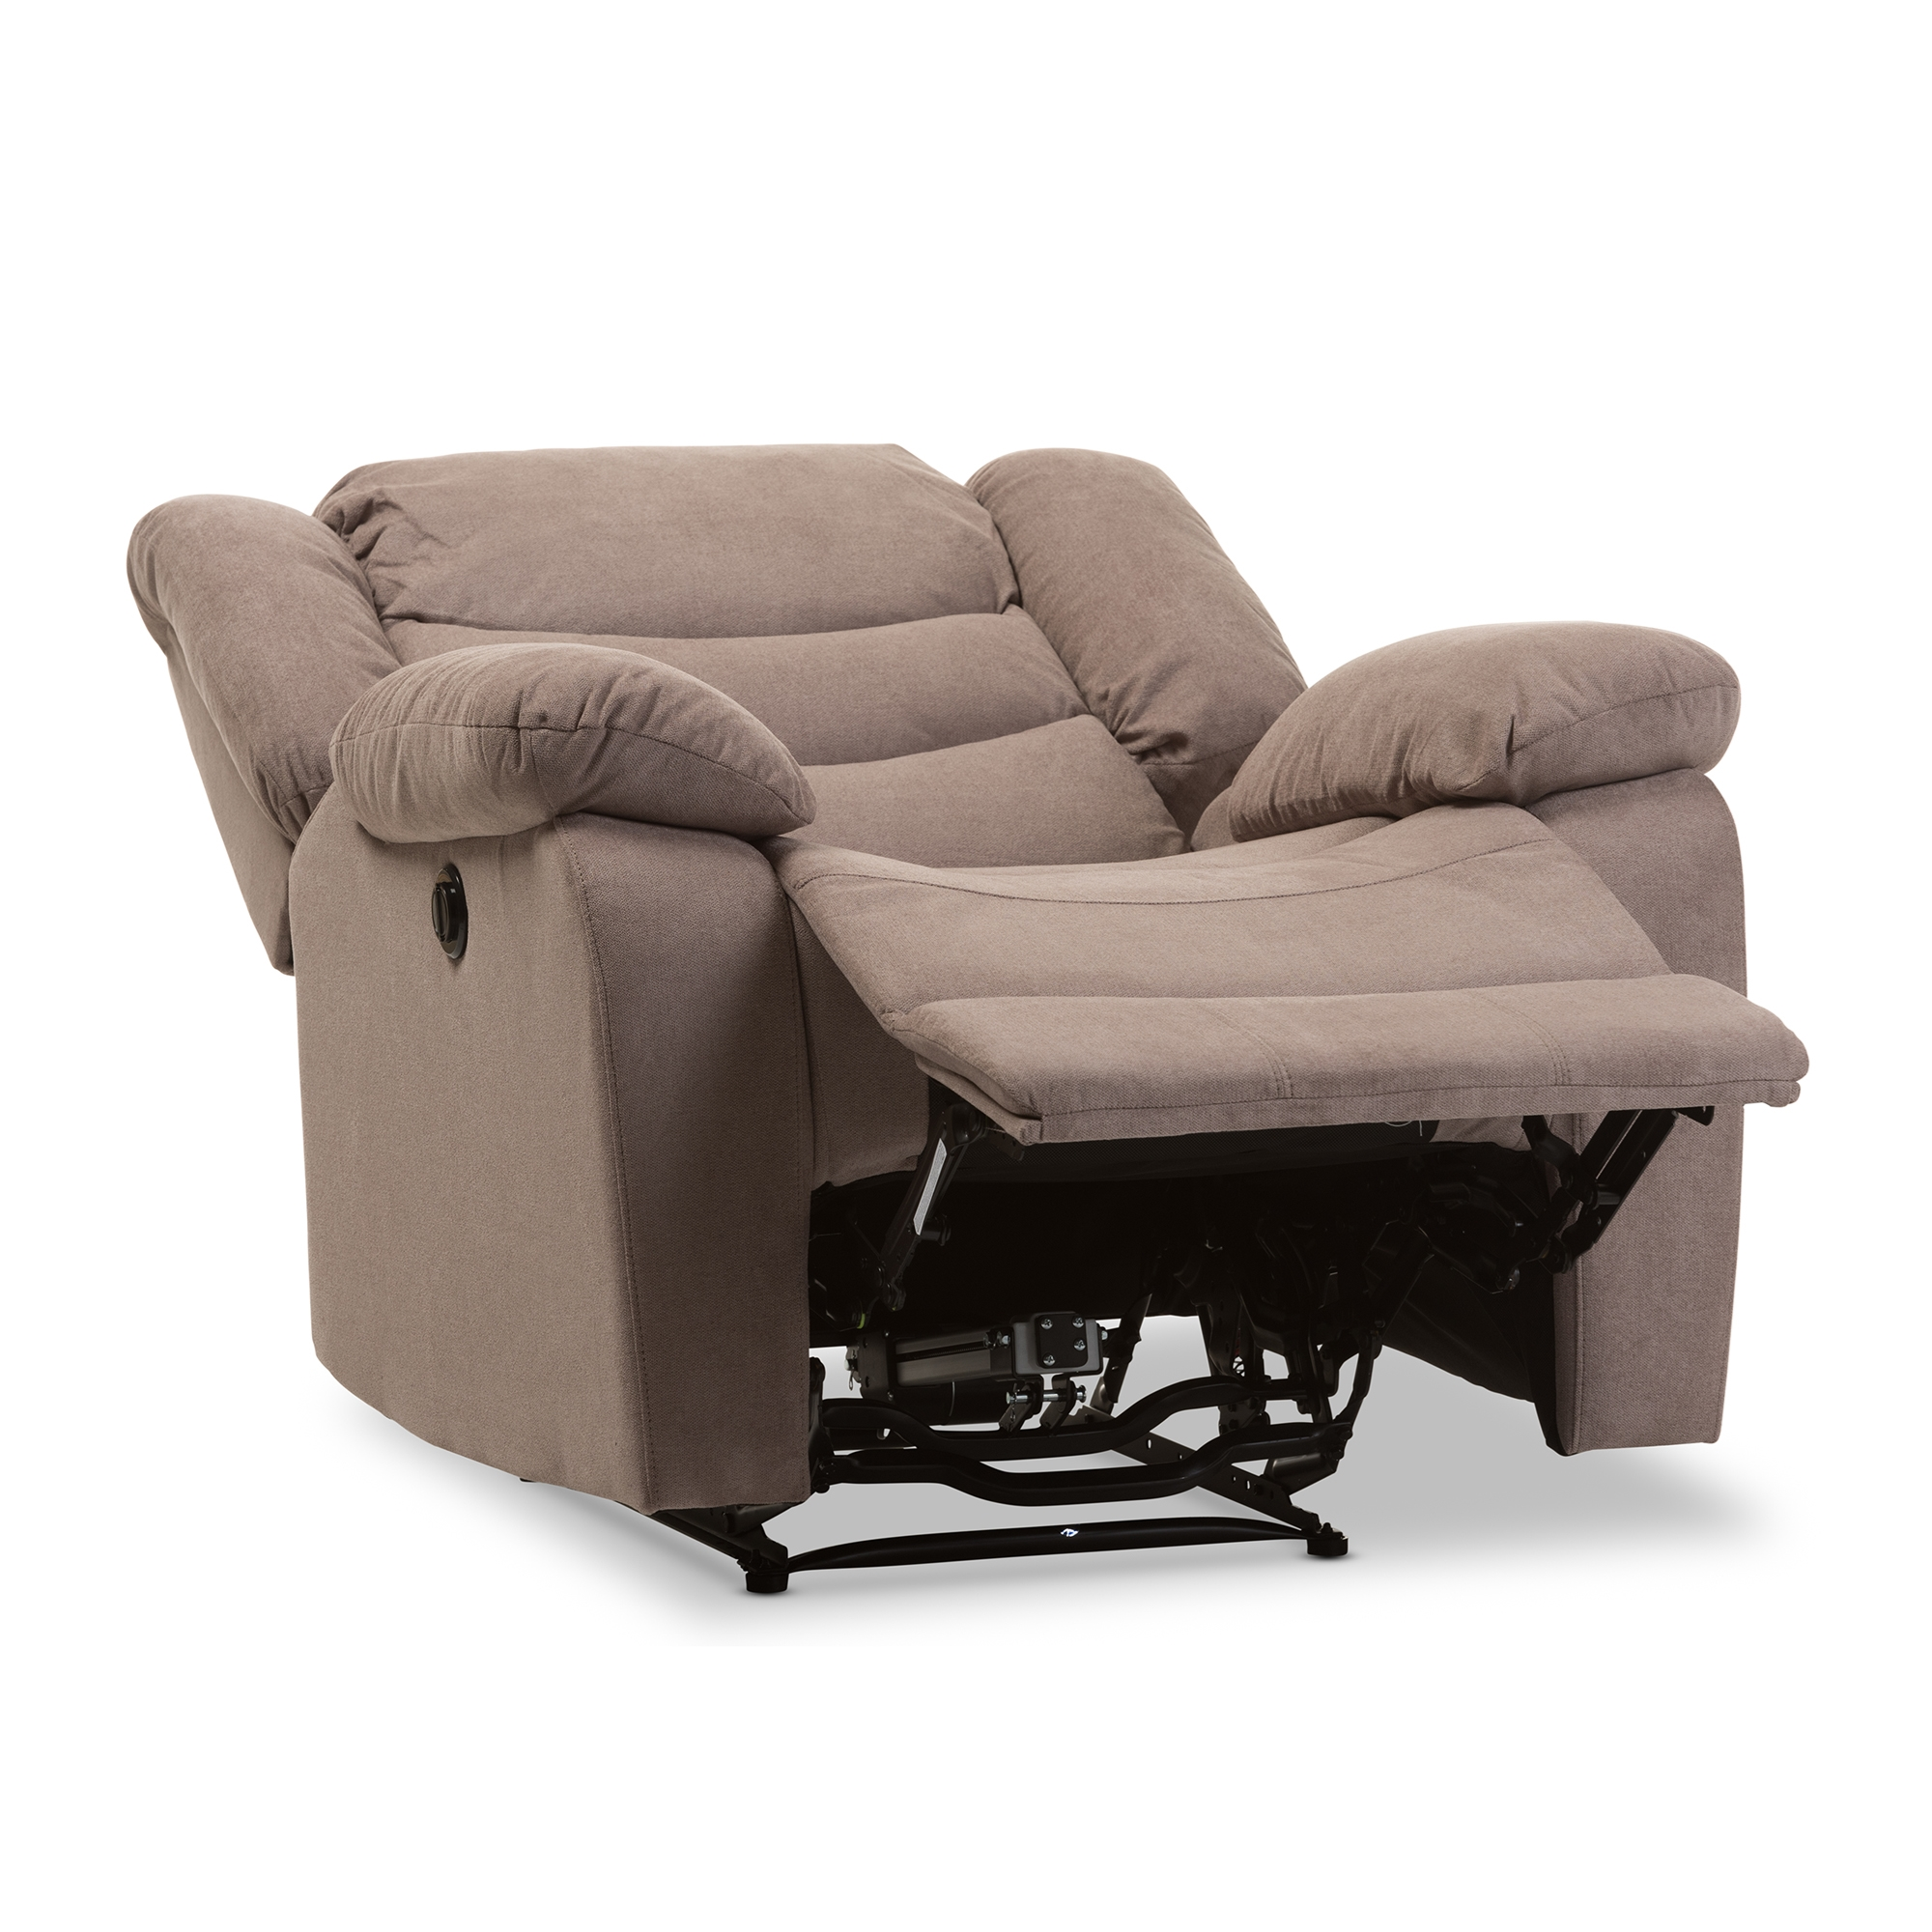 baxton studio lynette modern and taupe fabric power recliner chair - Electric Recliner Chairs